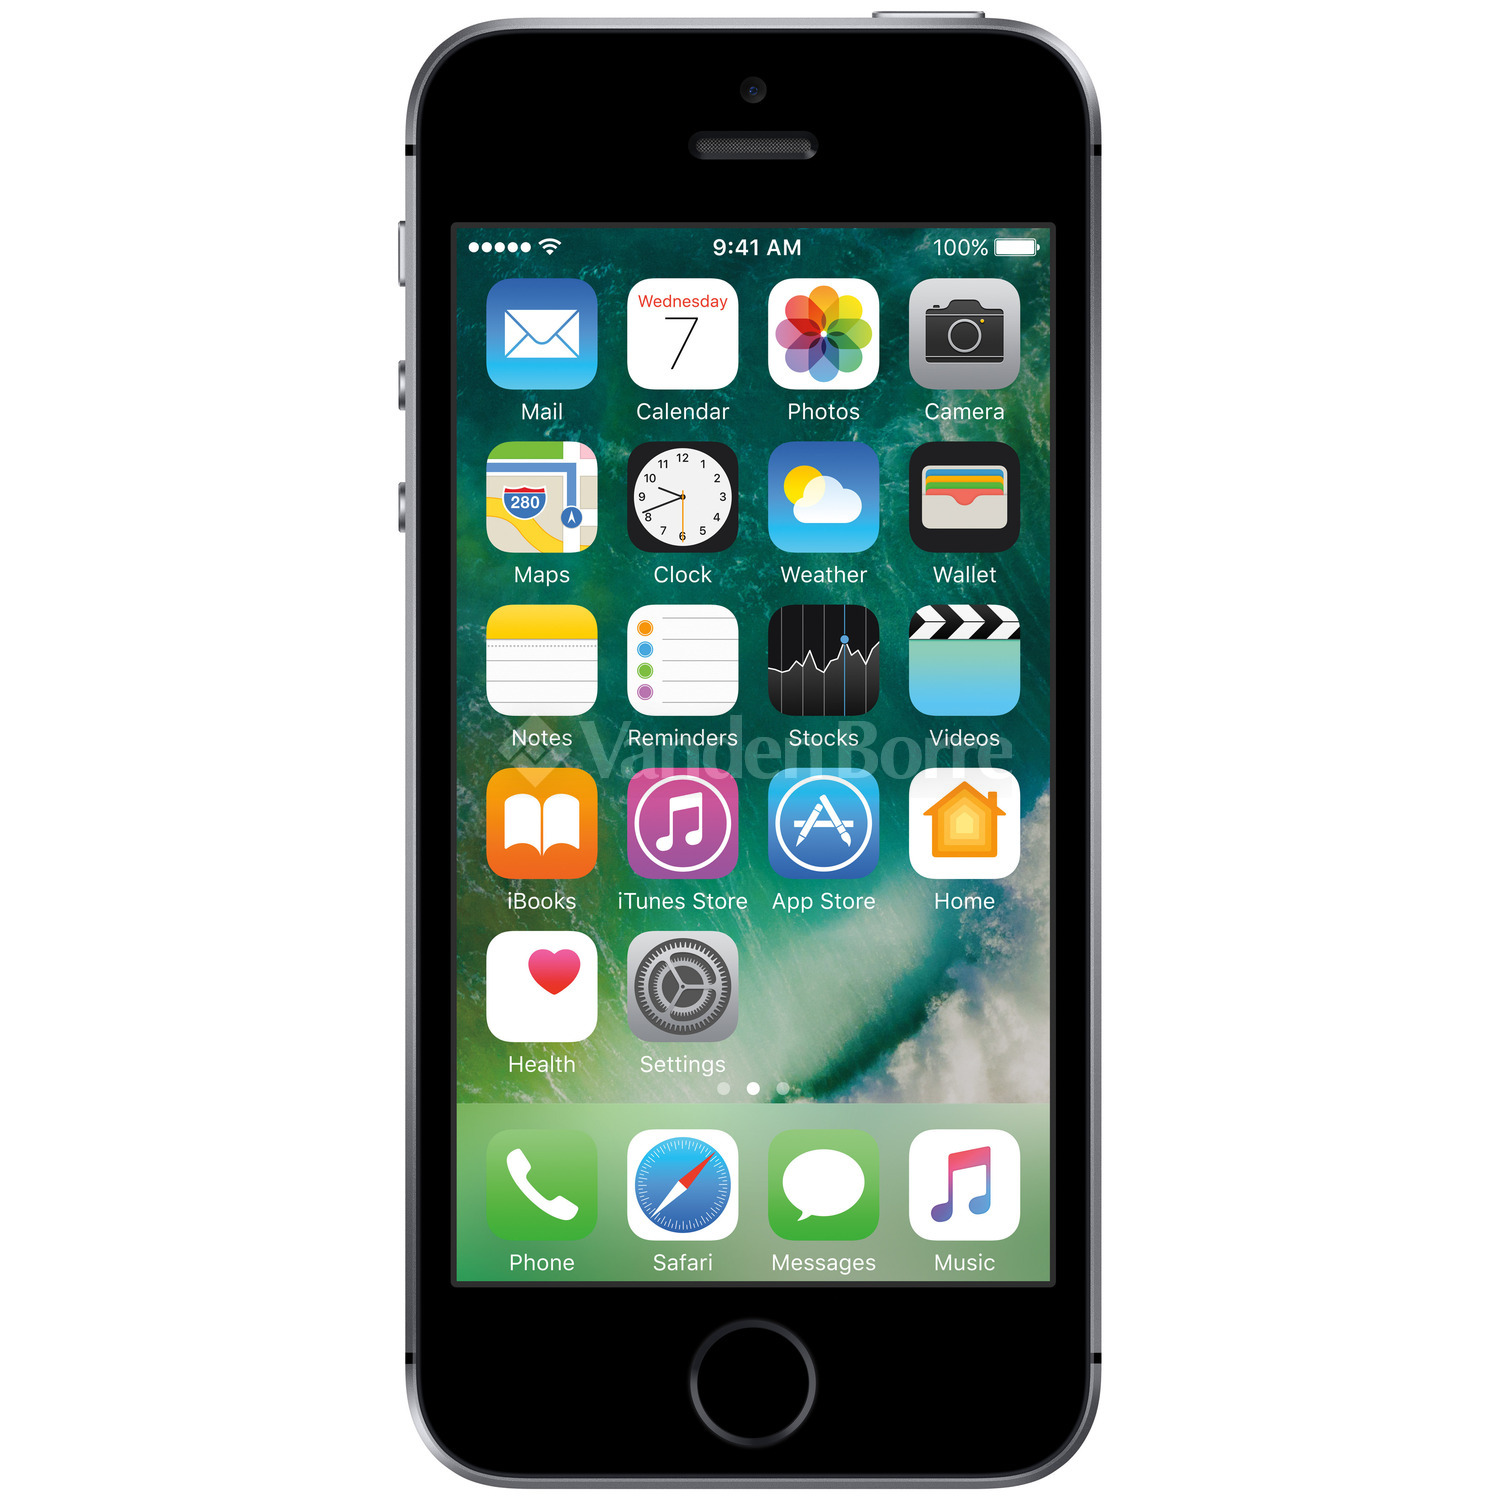 apple refurbished iphone 5s 16gb space grey bij vanden borre gemakkelijk vergelijken en aankopen. Black Bedroom Furniture Sets. Home Design Ideas